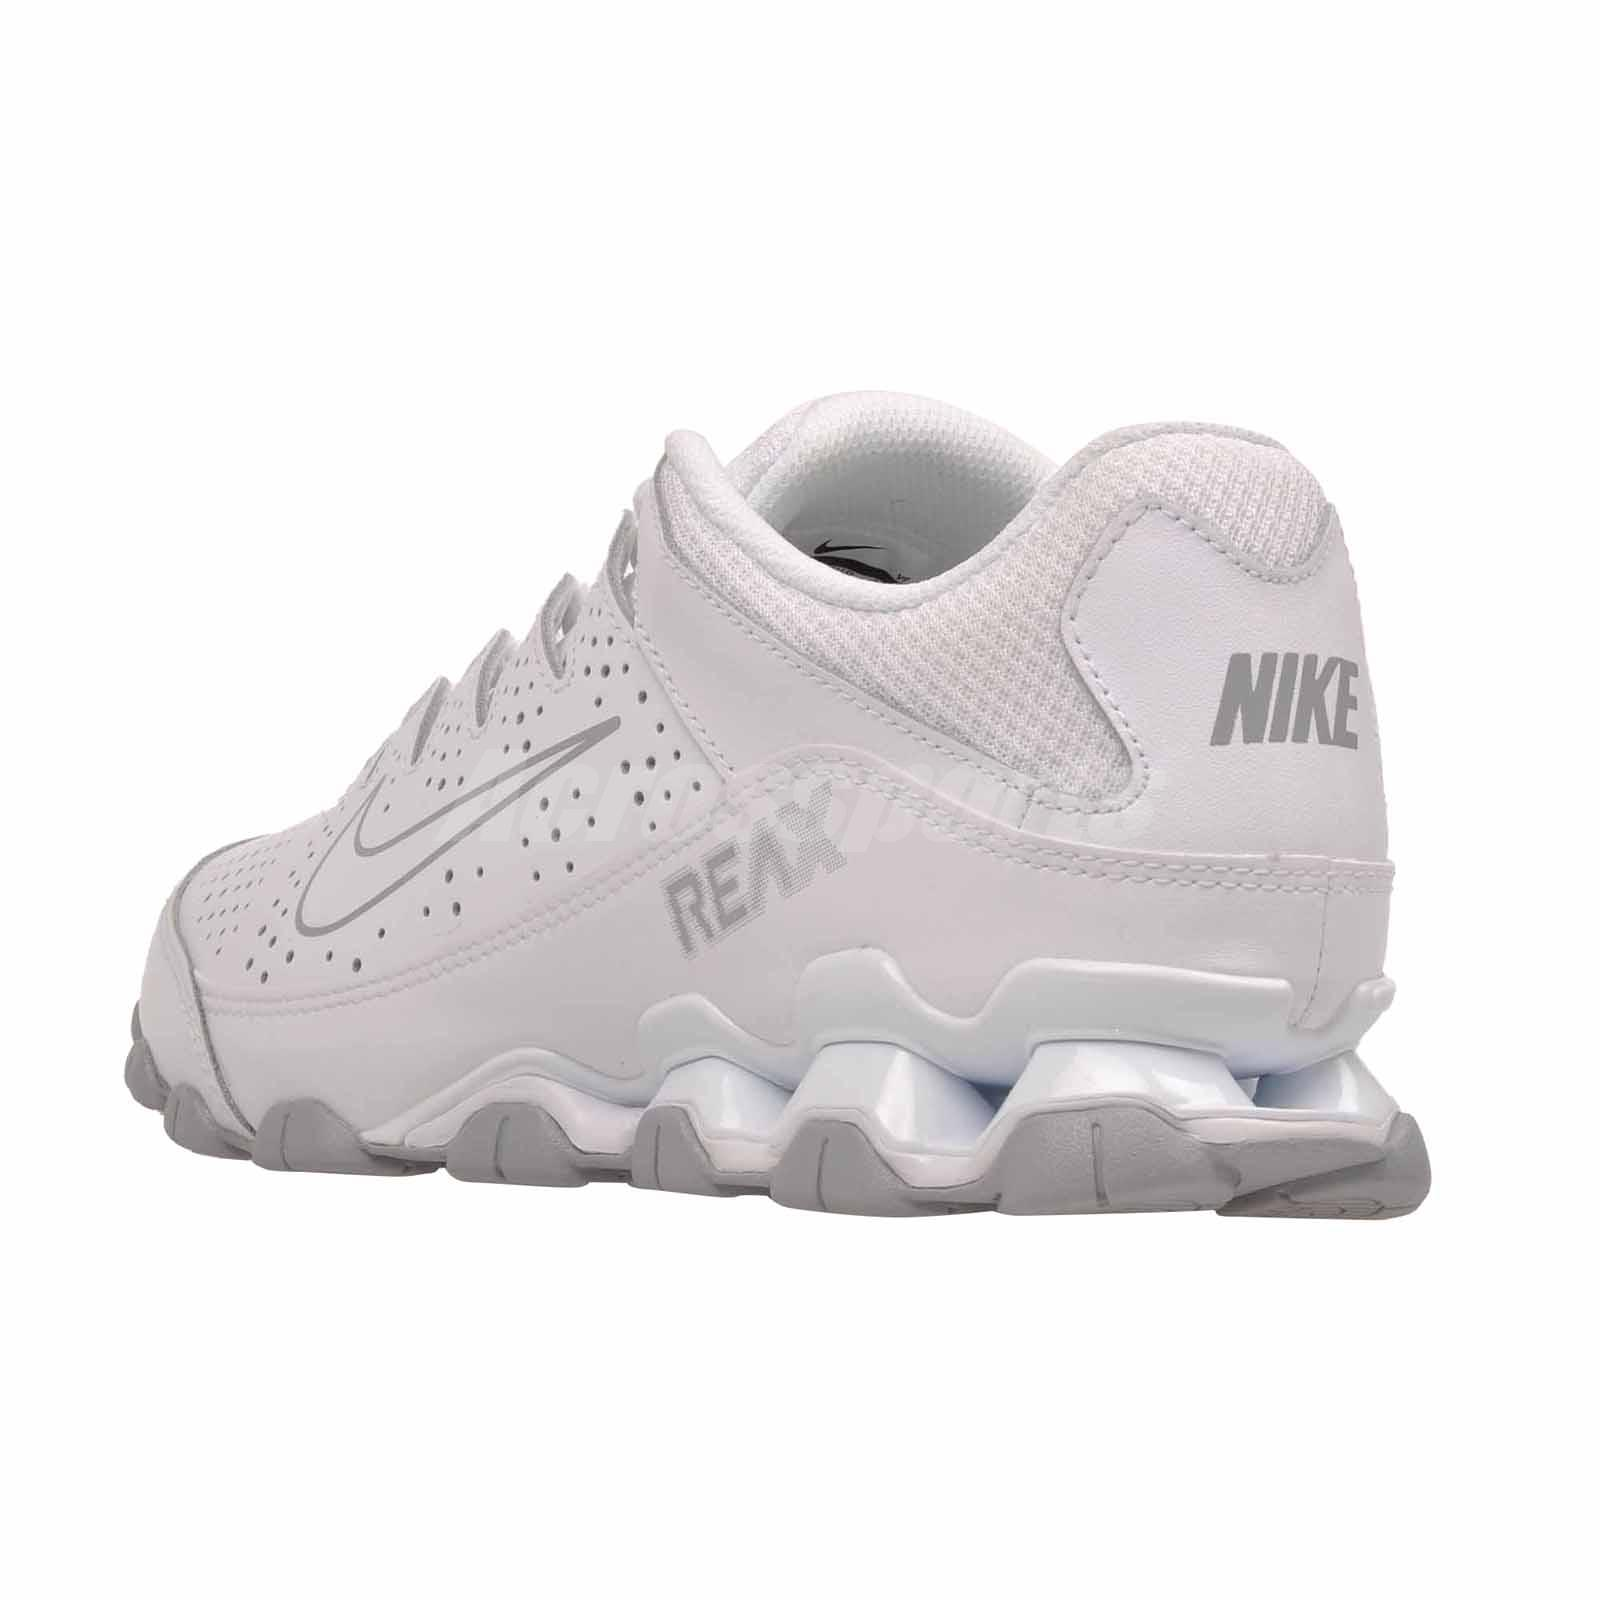 c9e2e91a243 Details about Nike Reax 8 TR Cross Training Mens Trainers Shoes White  616272-101